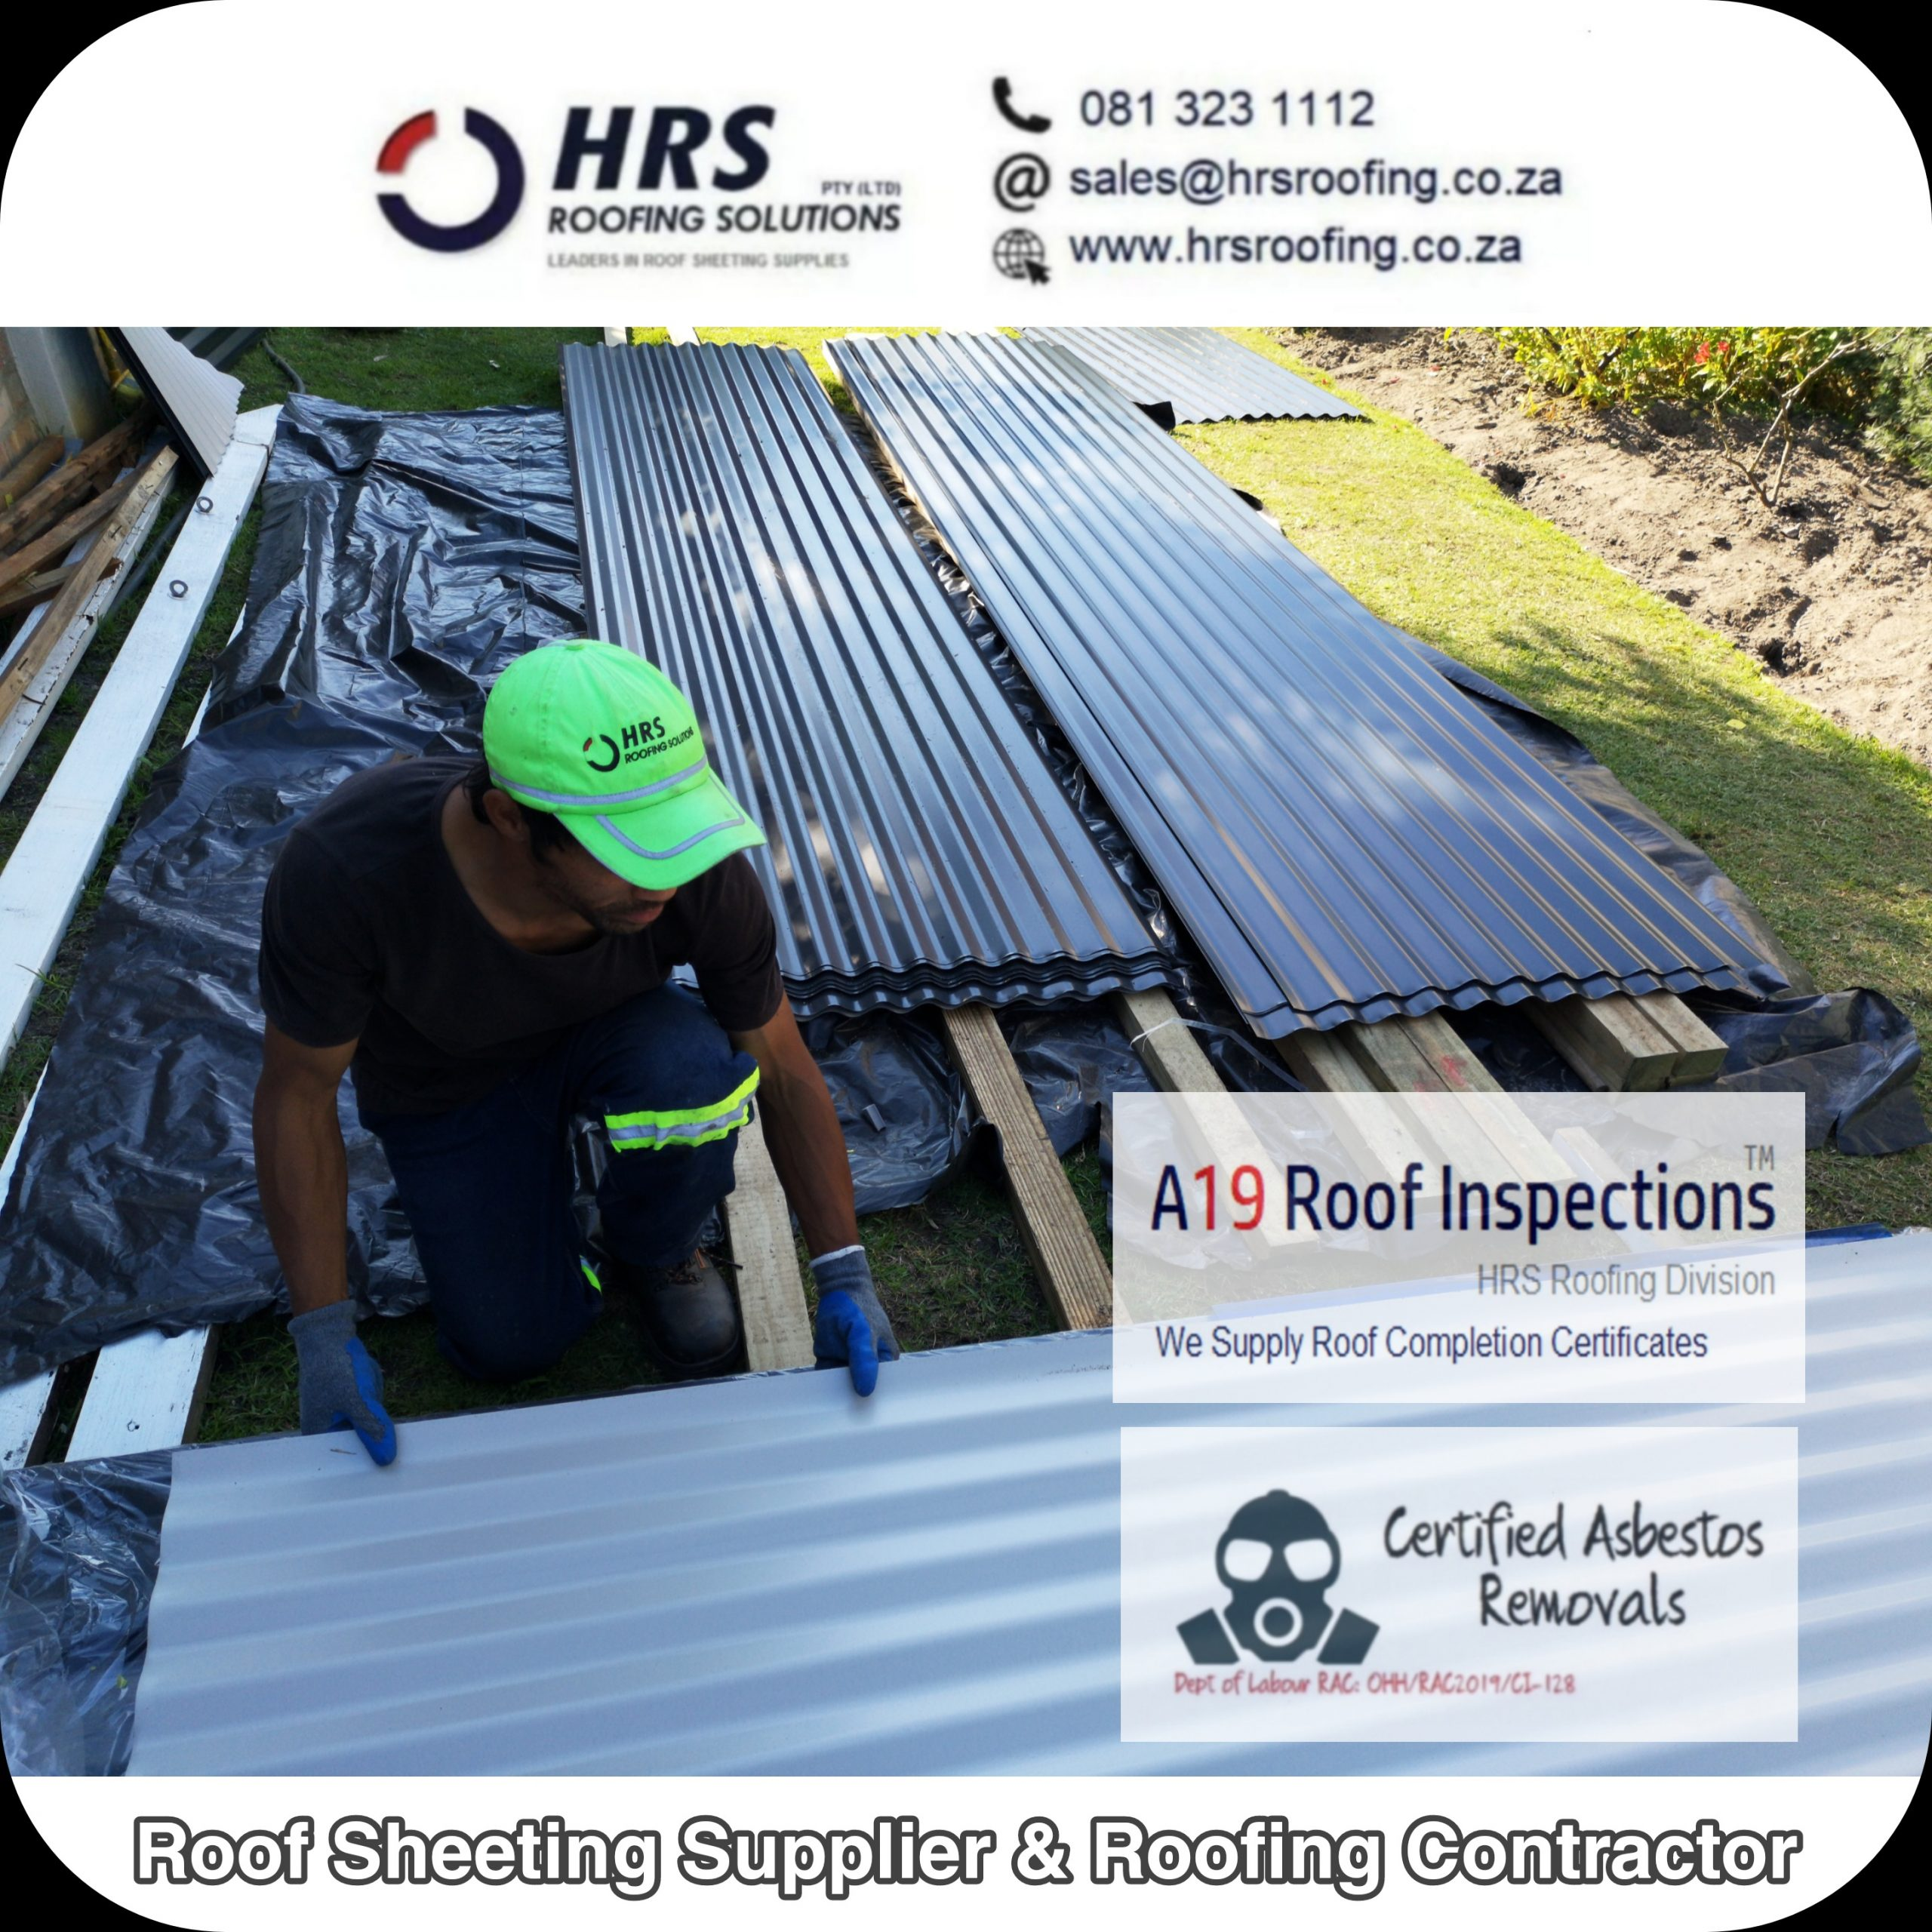 ibr corrugated colorbond Charcoal roof sheets Worcester Wellington